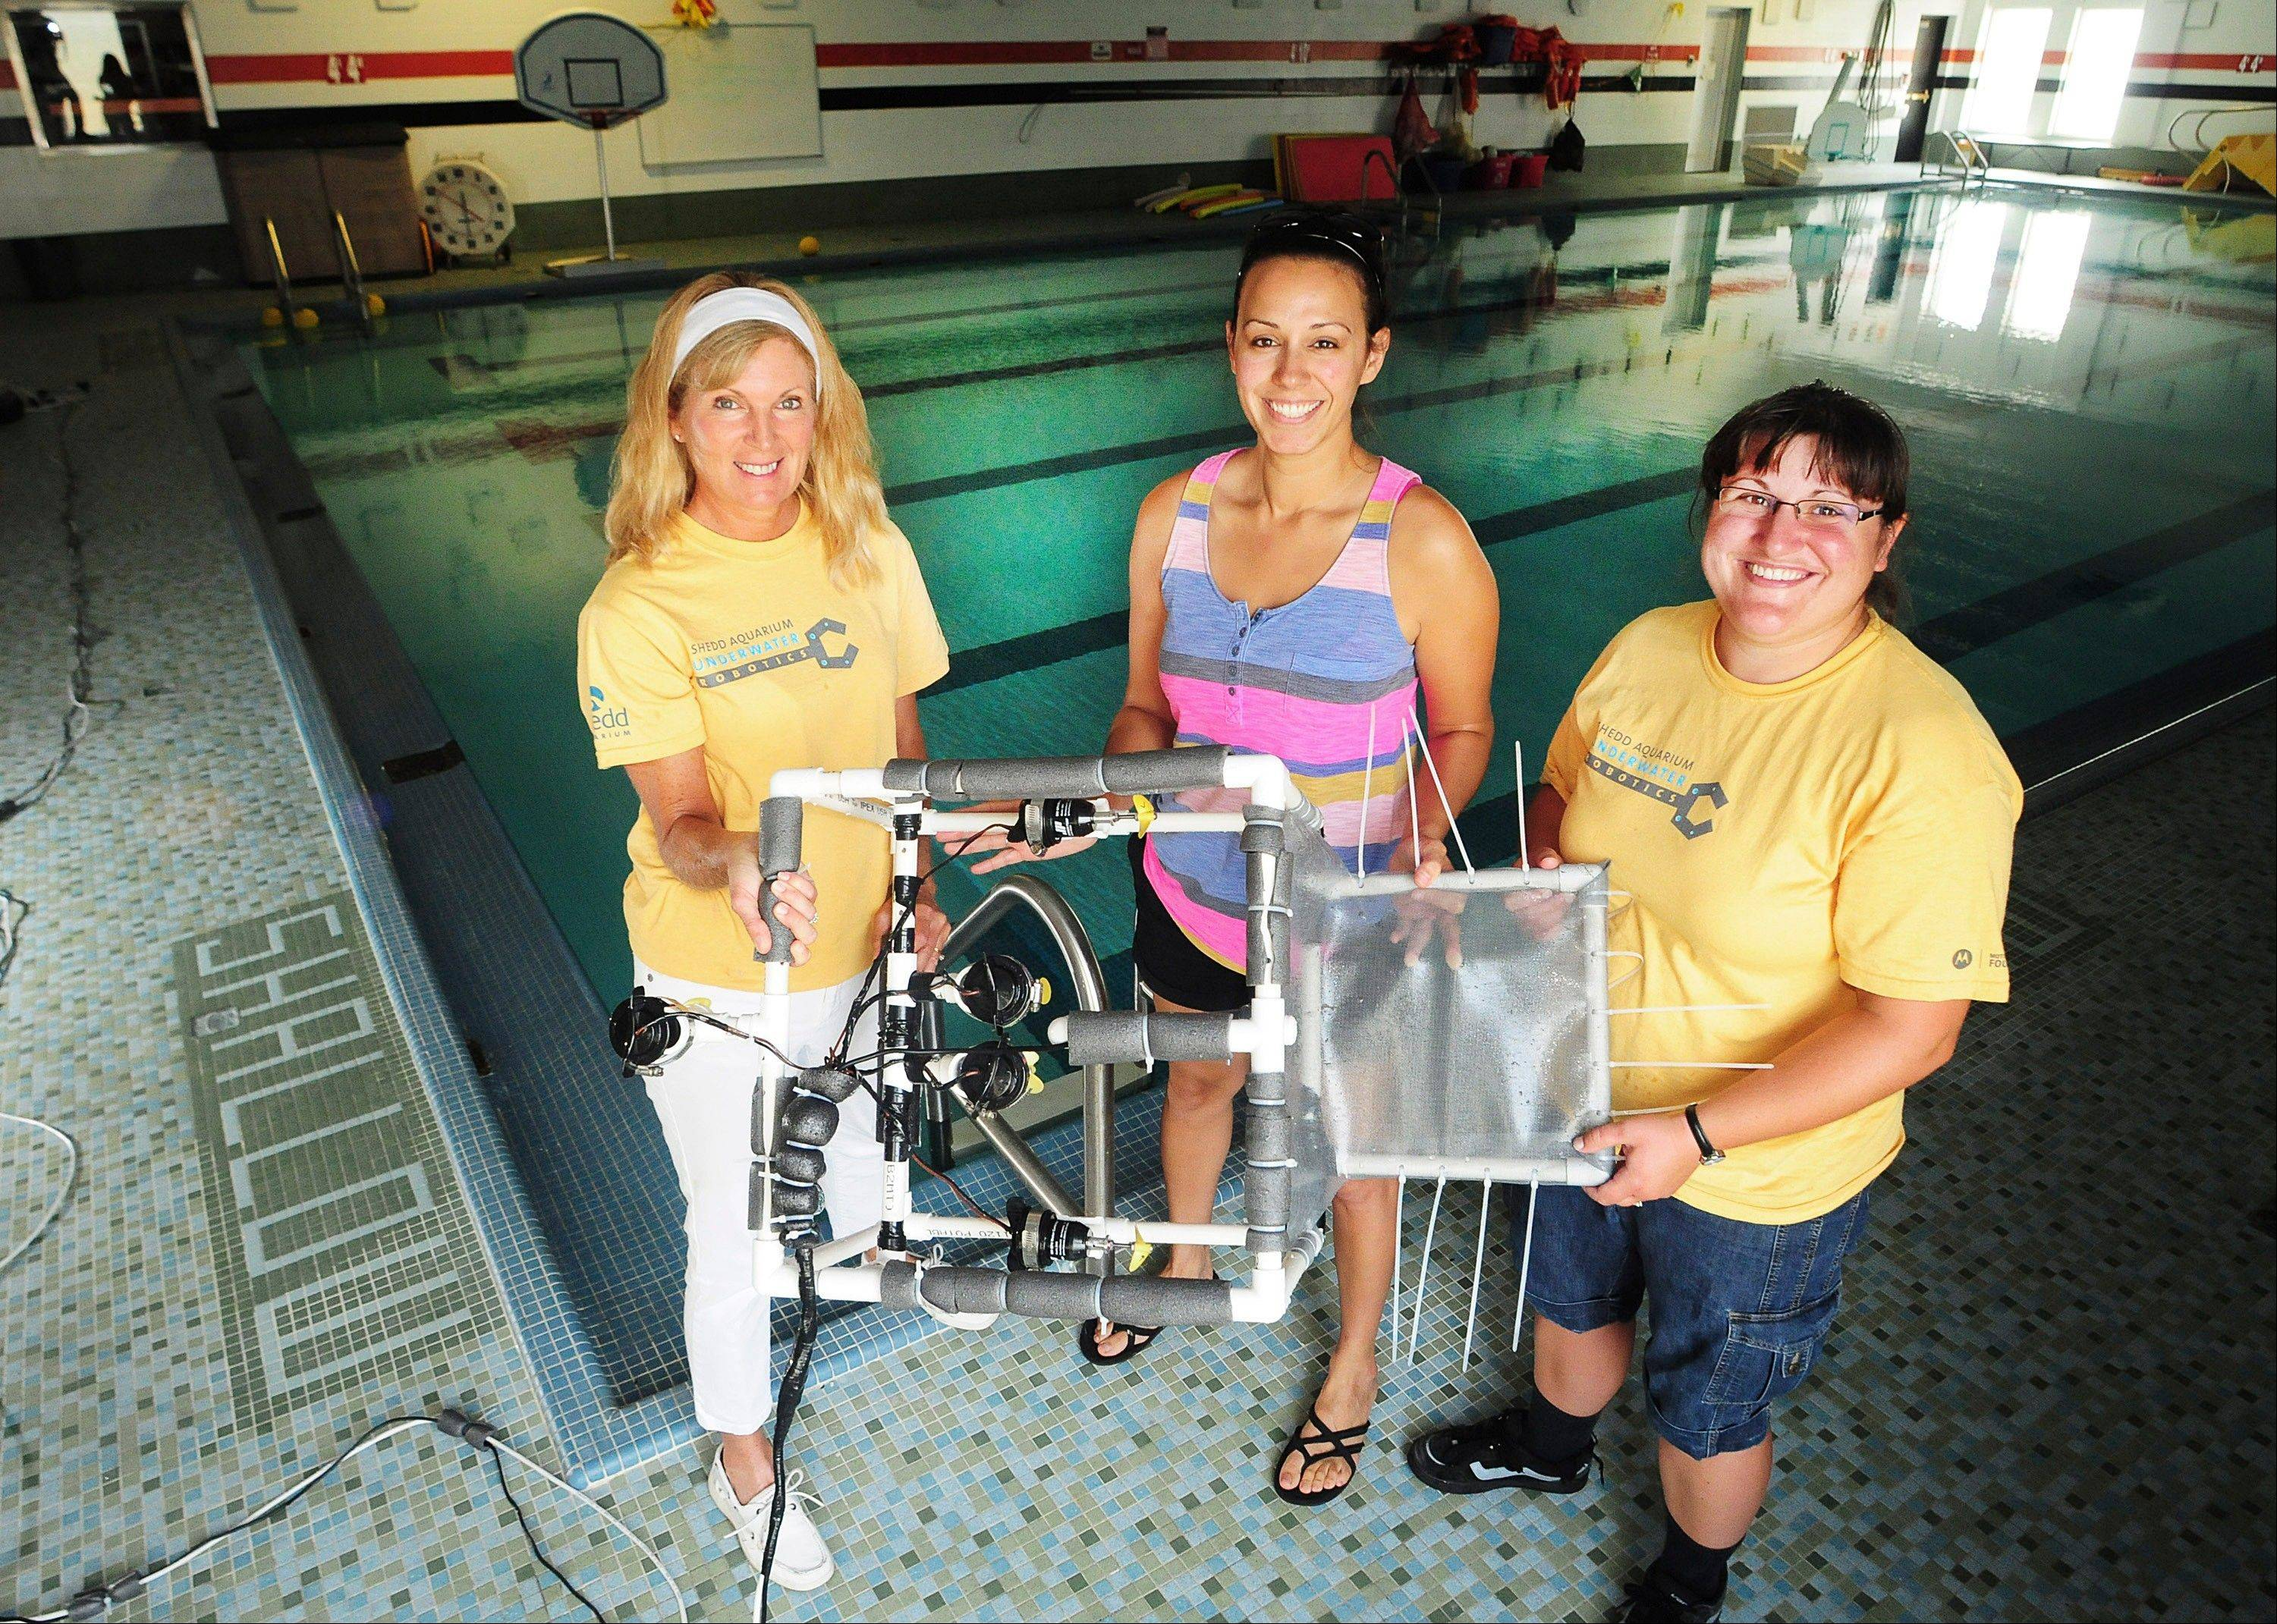 Sindy Main, left, Erica Nieto, center, and Stephanie Garner, three teachers from Carl Sandburg High School in Freeport, Ill., show off the underwater robot they built in July during a robotics workshop at Shedd Aquarium in Chicago.